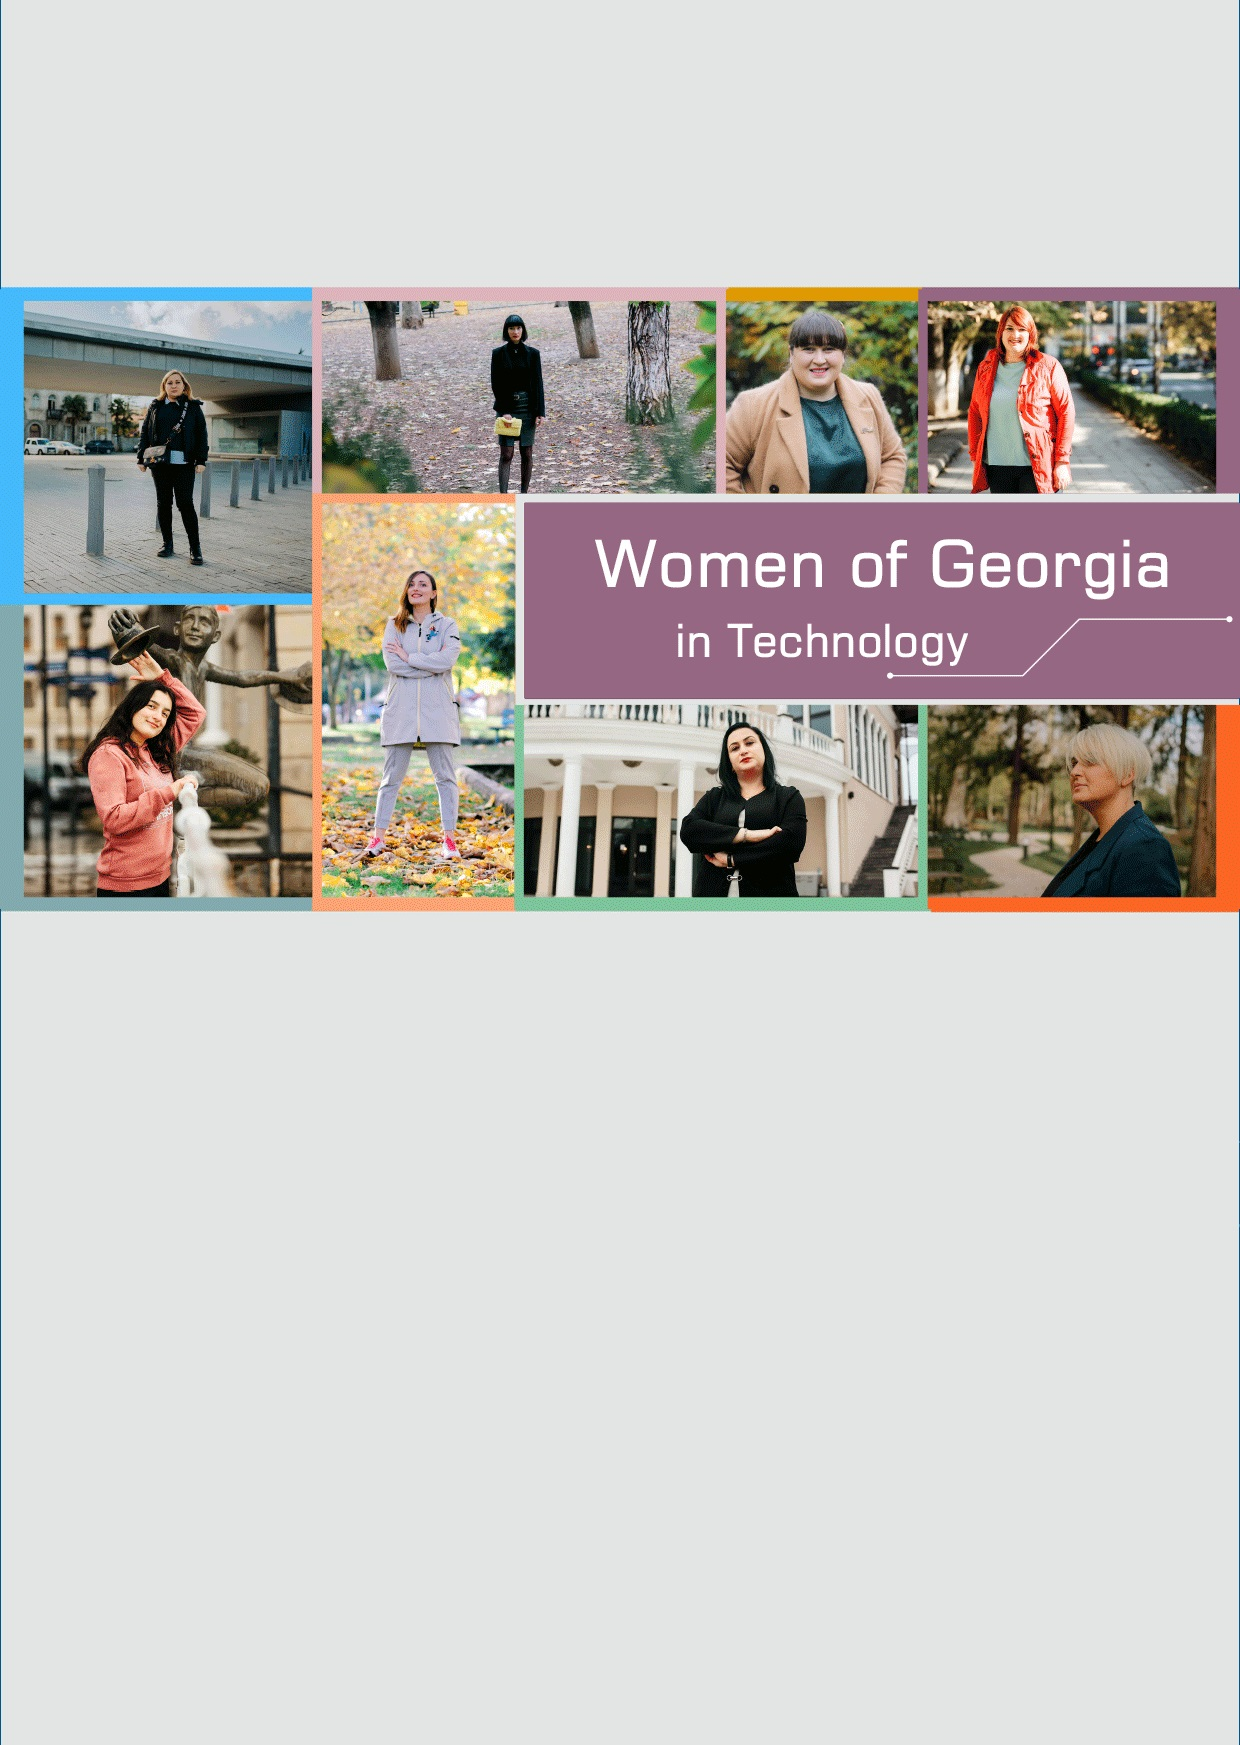 Women of Georgia in Technology. Photo: Women of Georgia